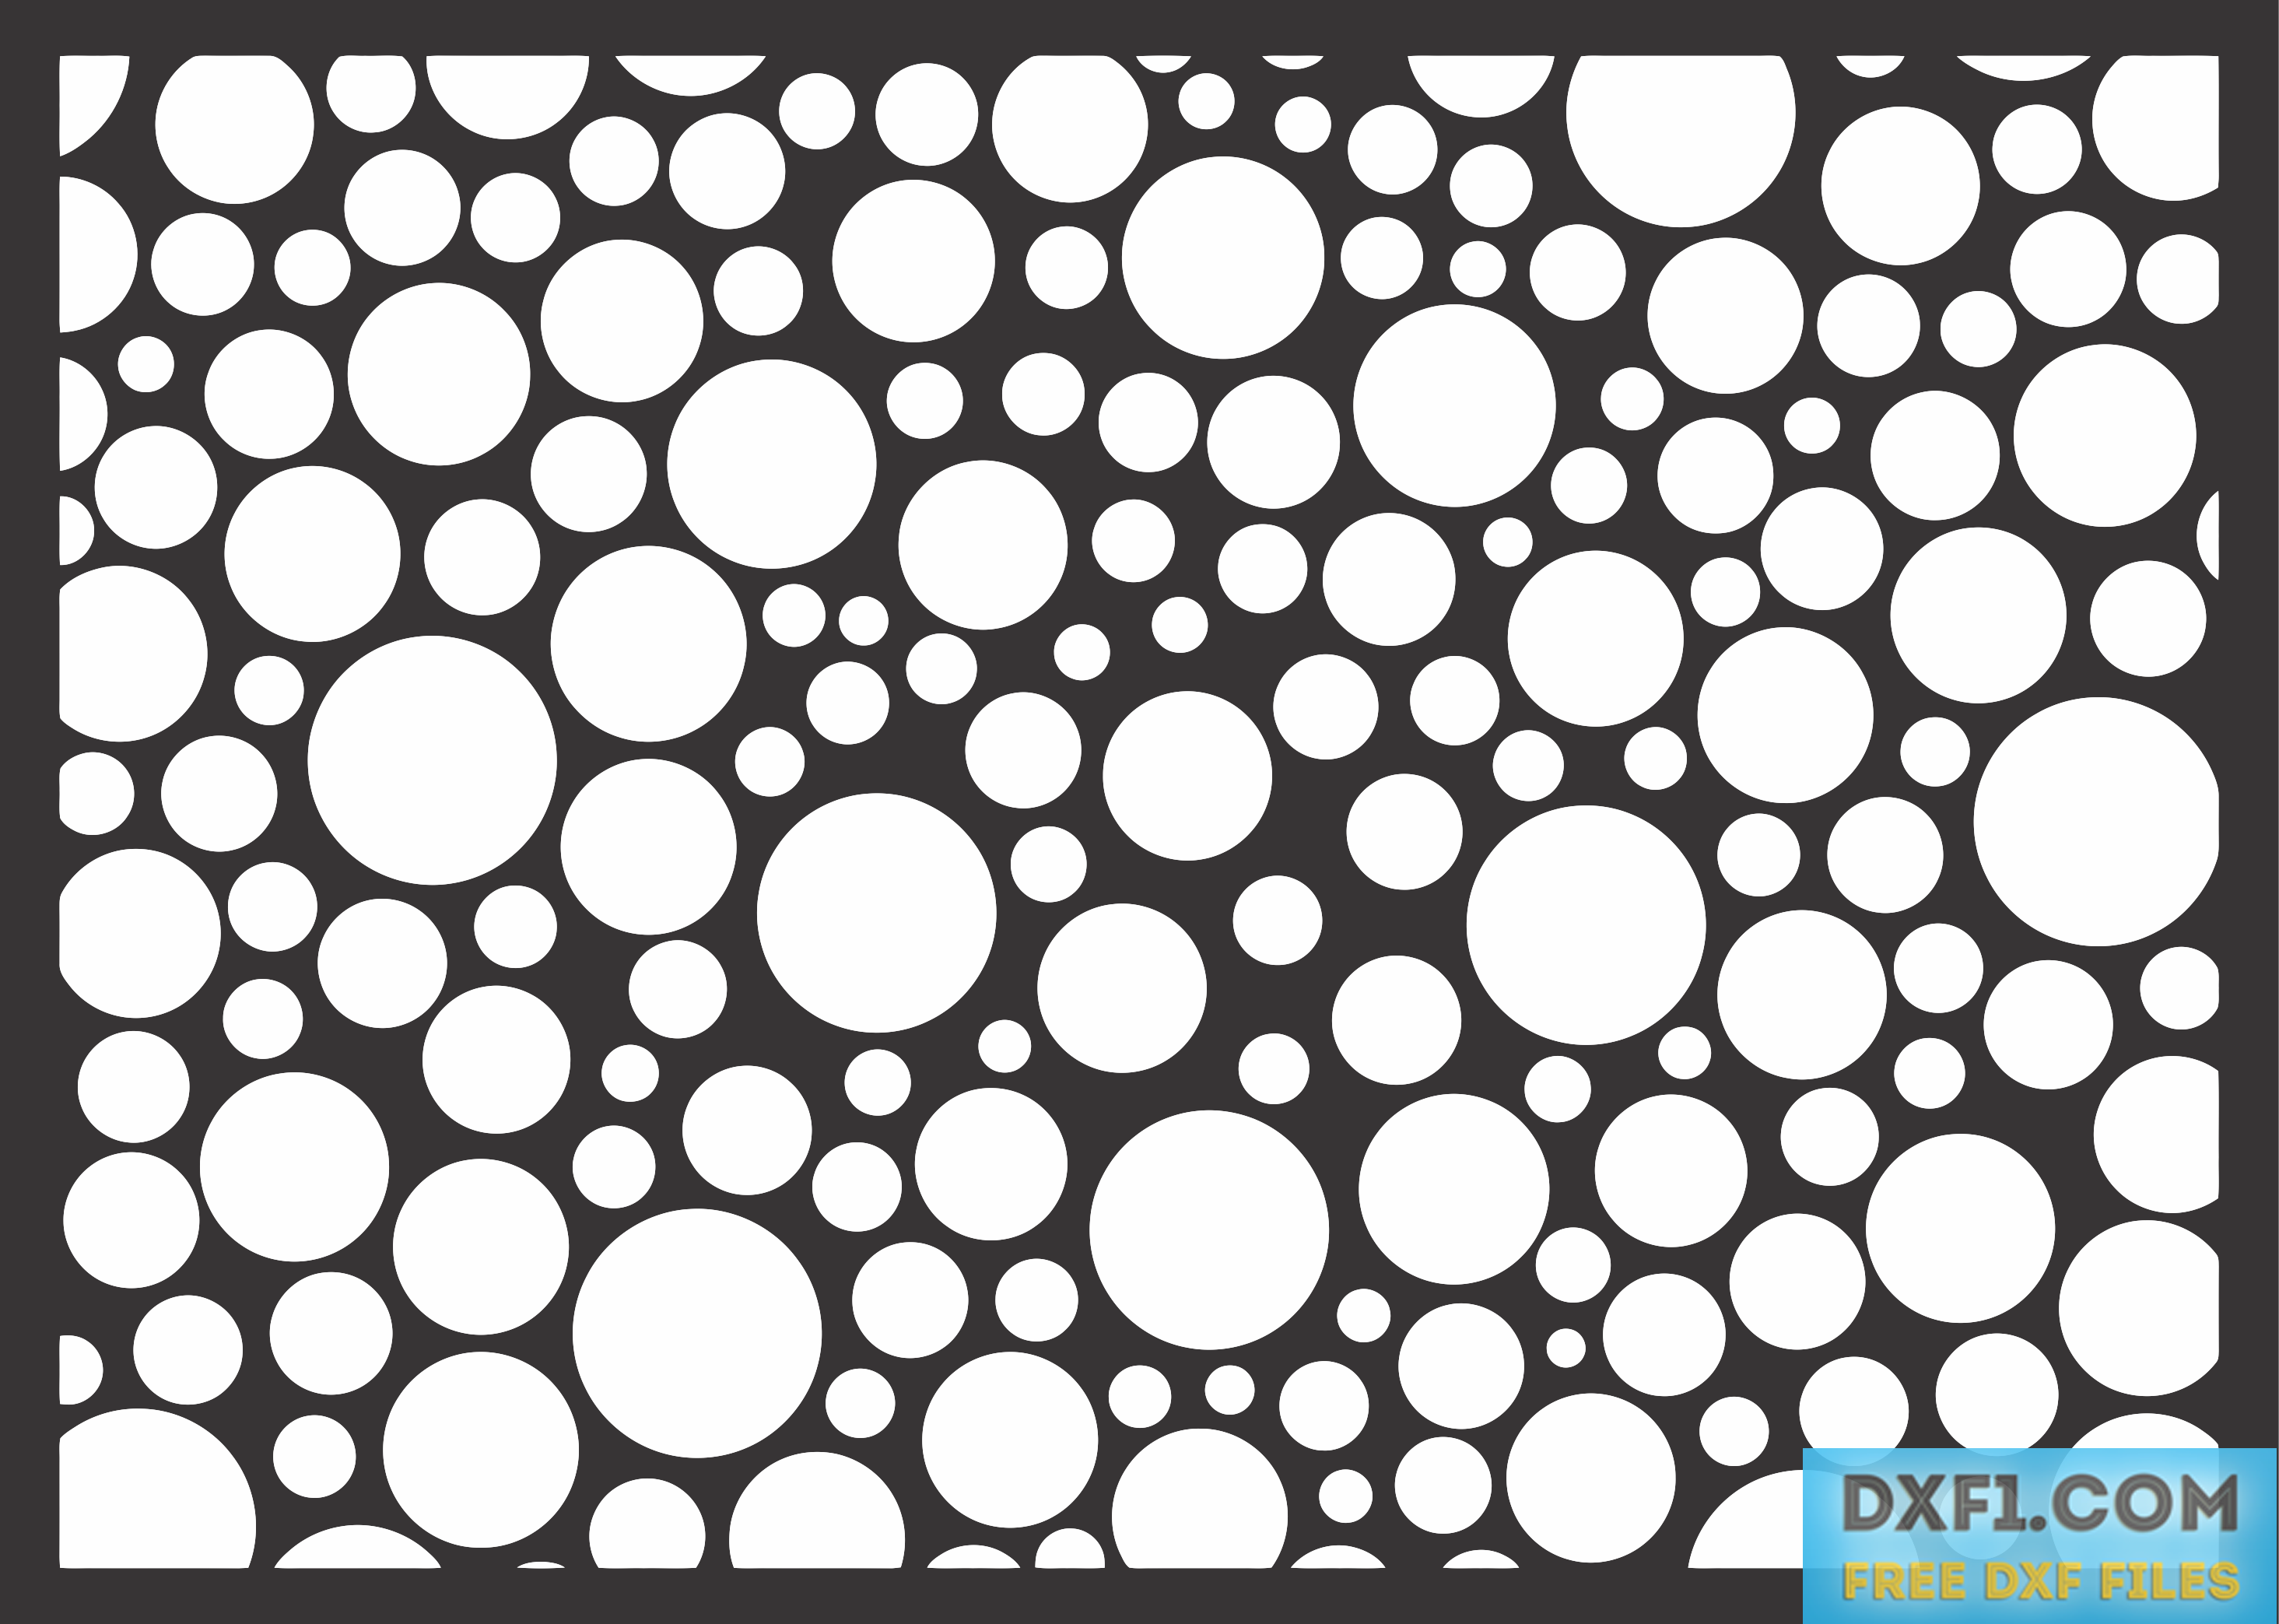 Decorative panel with circles. Download contains various